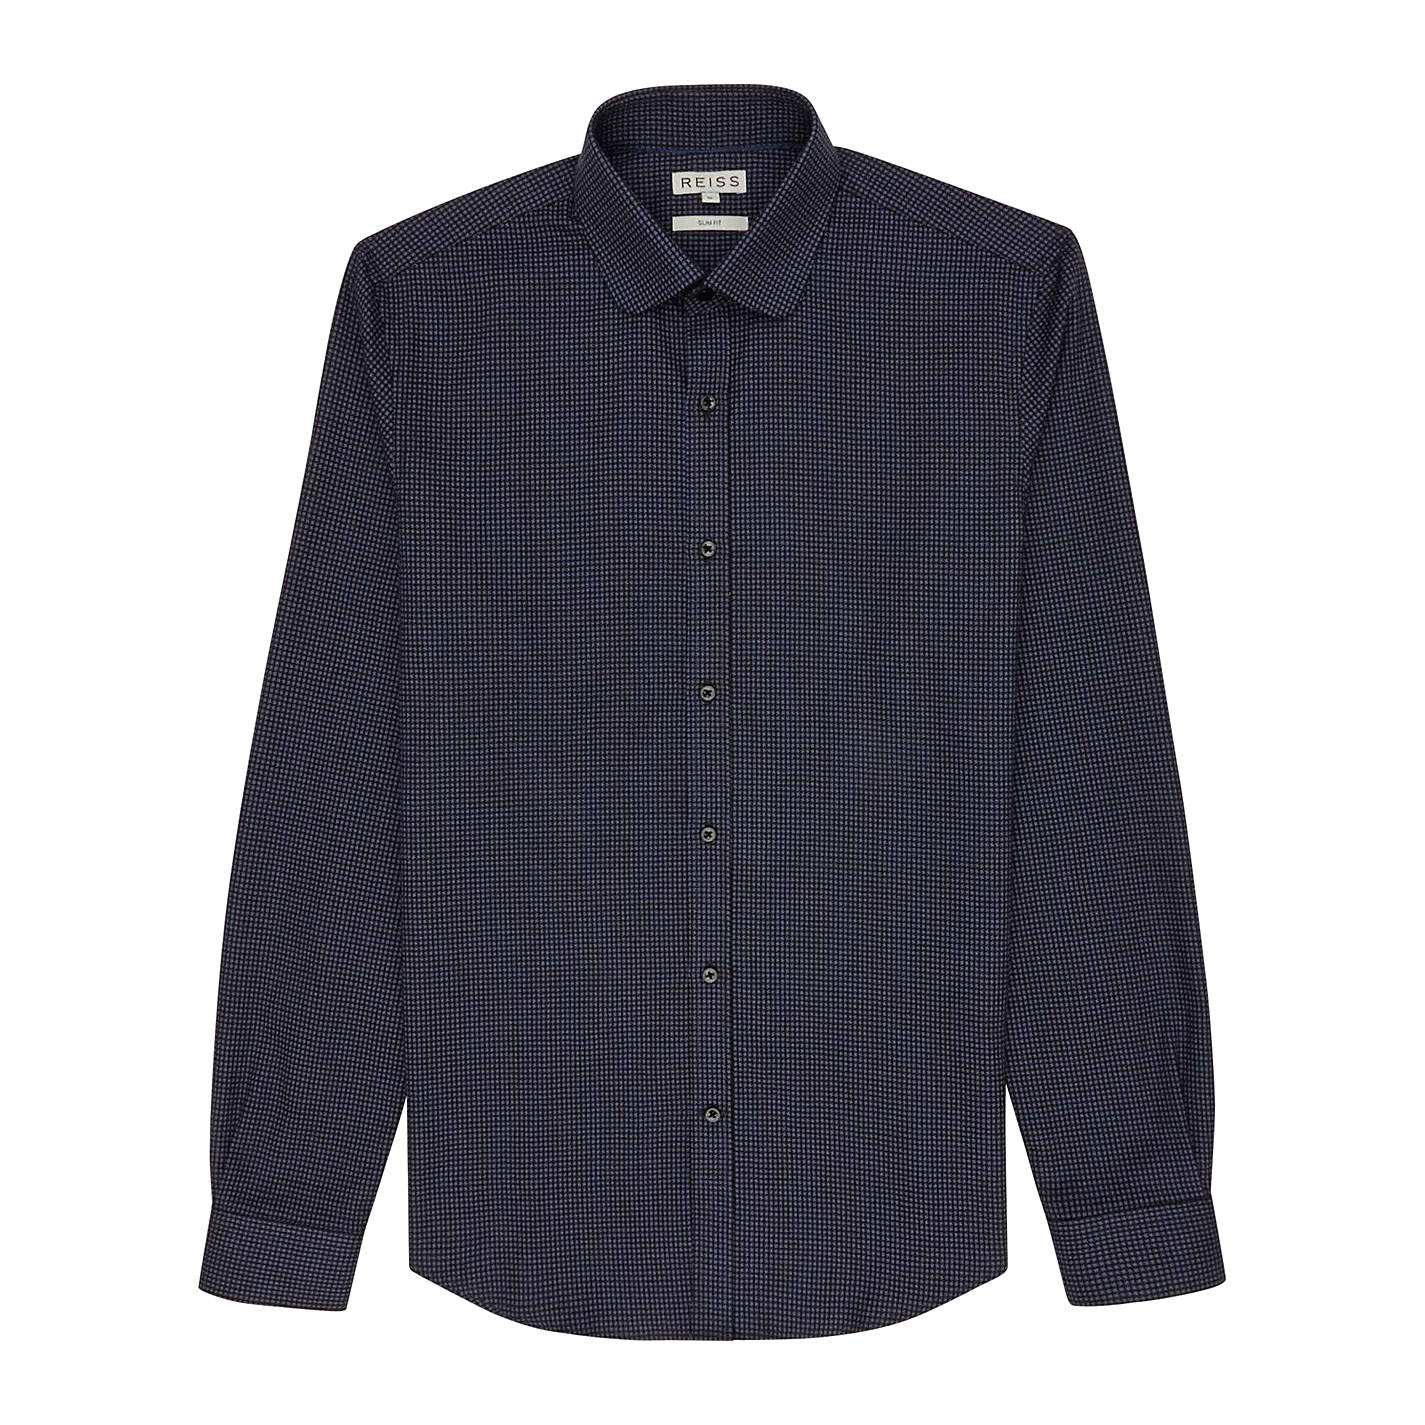 Buy Reiss Fluxus Curved Collar Dogtooth Shirt, Navy online at John